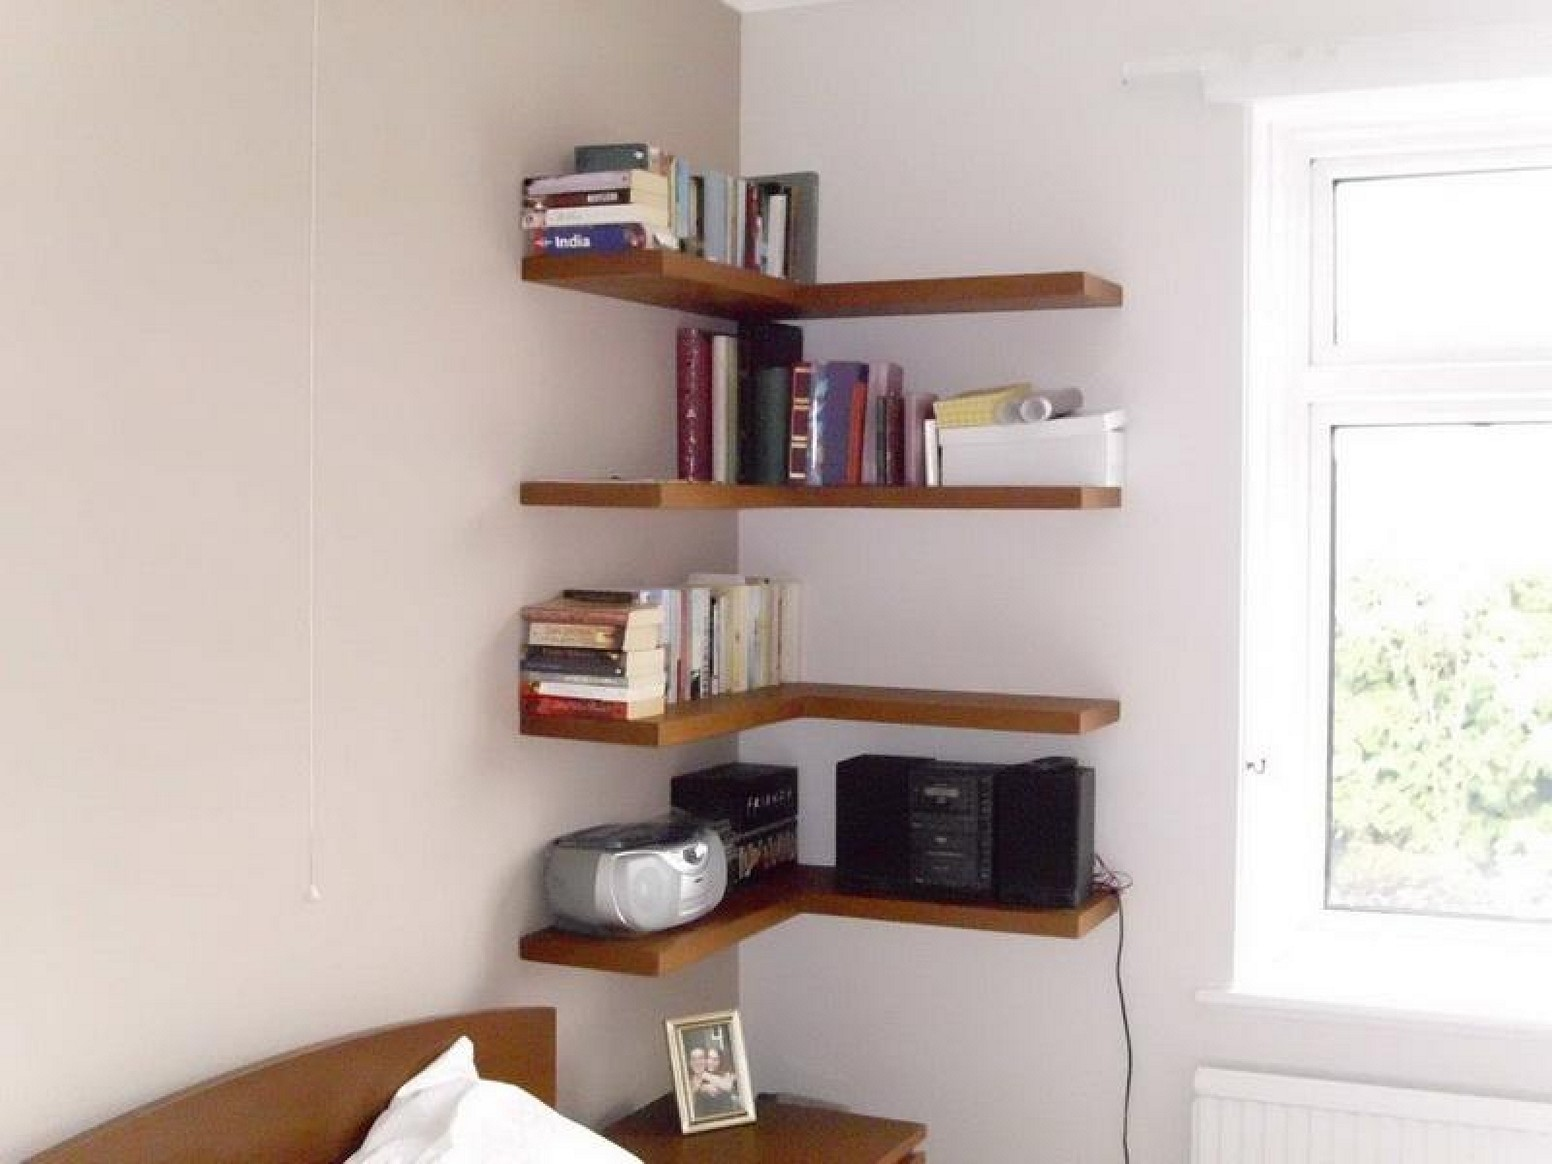 unlimited corner bookshelf ideas diy floating shelves canvas inch shelf brackets kit simple design computer desk with storage kitchen stand long thin shoe rack ikea wall shelving